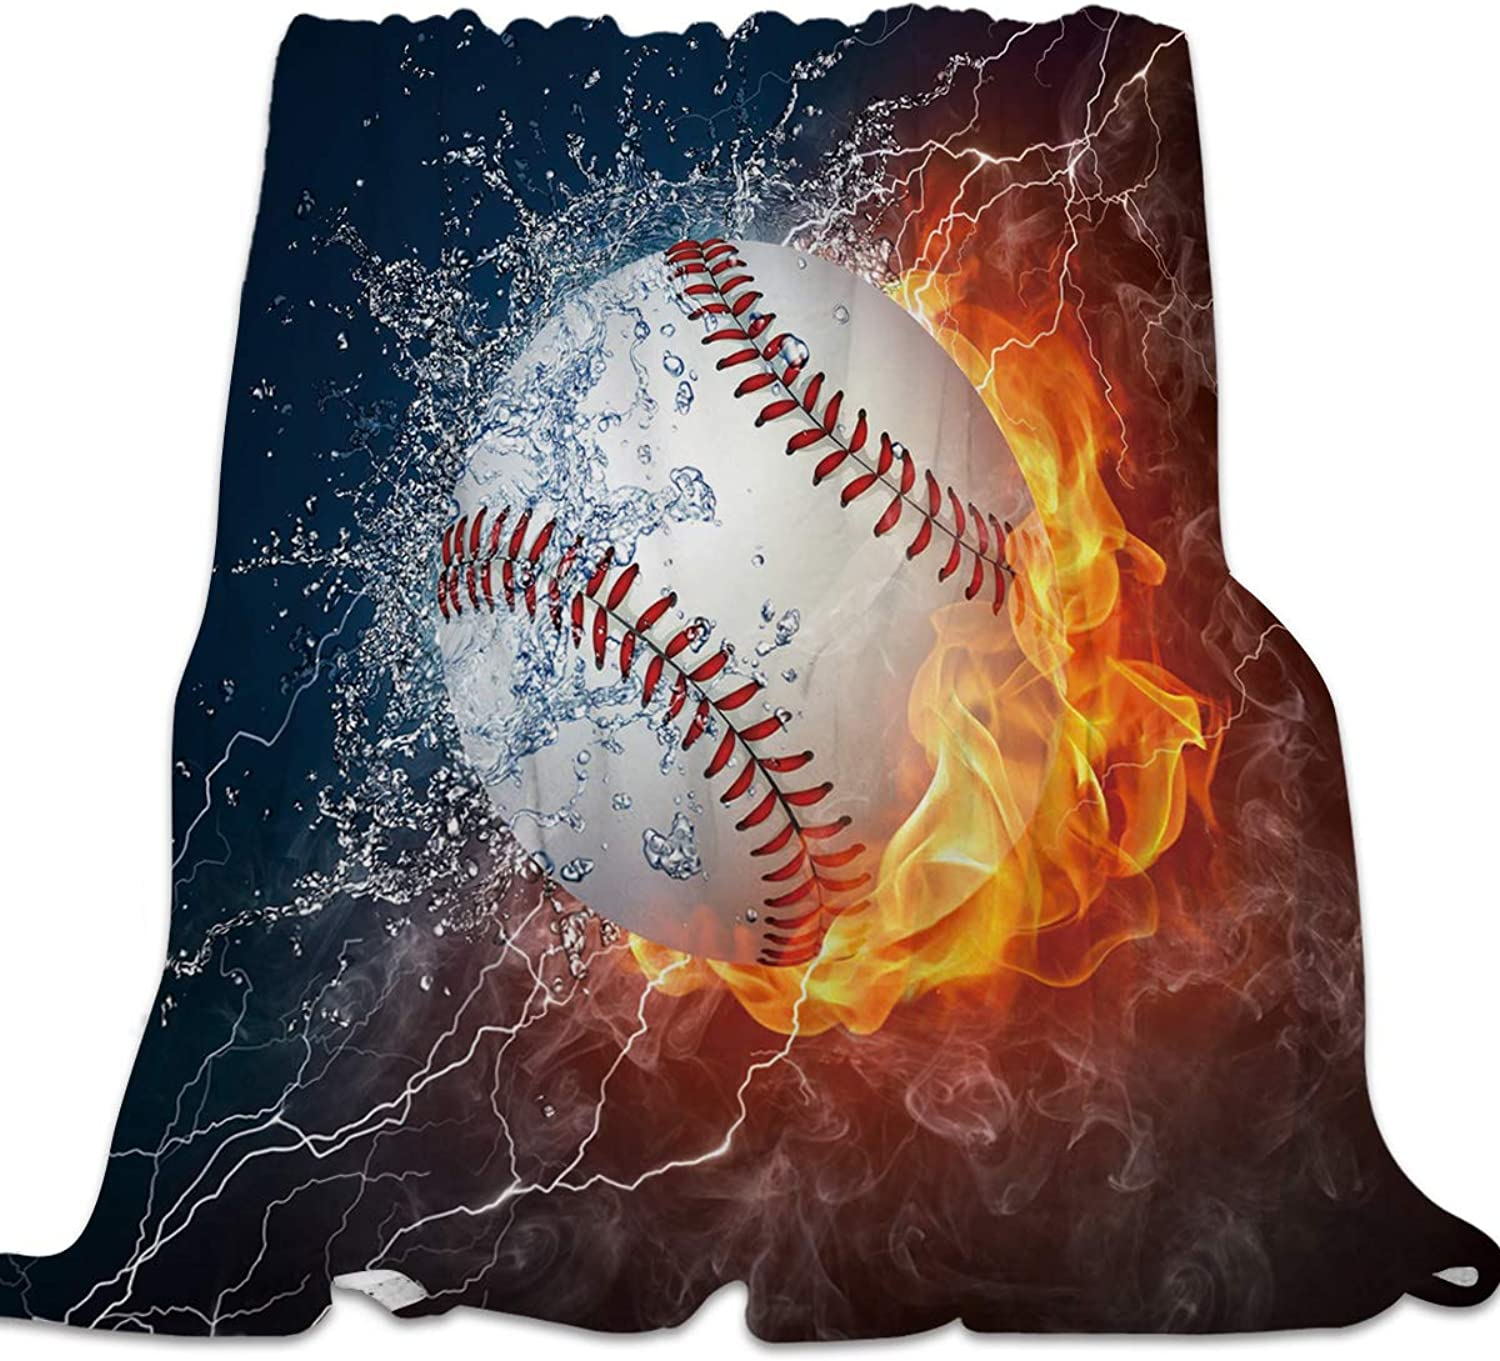 49x59 Inch Flannel Fleece Bed Blanket Soft ThrowBlankets for Girls Boys,Cool 3D Baseball with Water Fire Prints,Lightweight Warm Kids Blankets for Bedroom Living Room Sofa Couch Home Decor